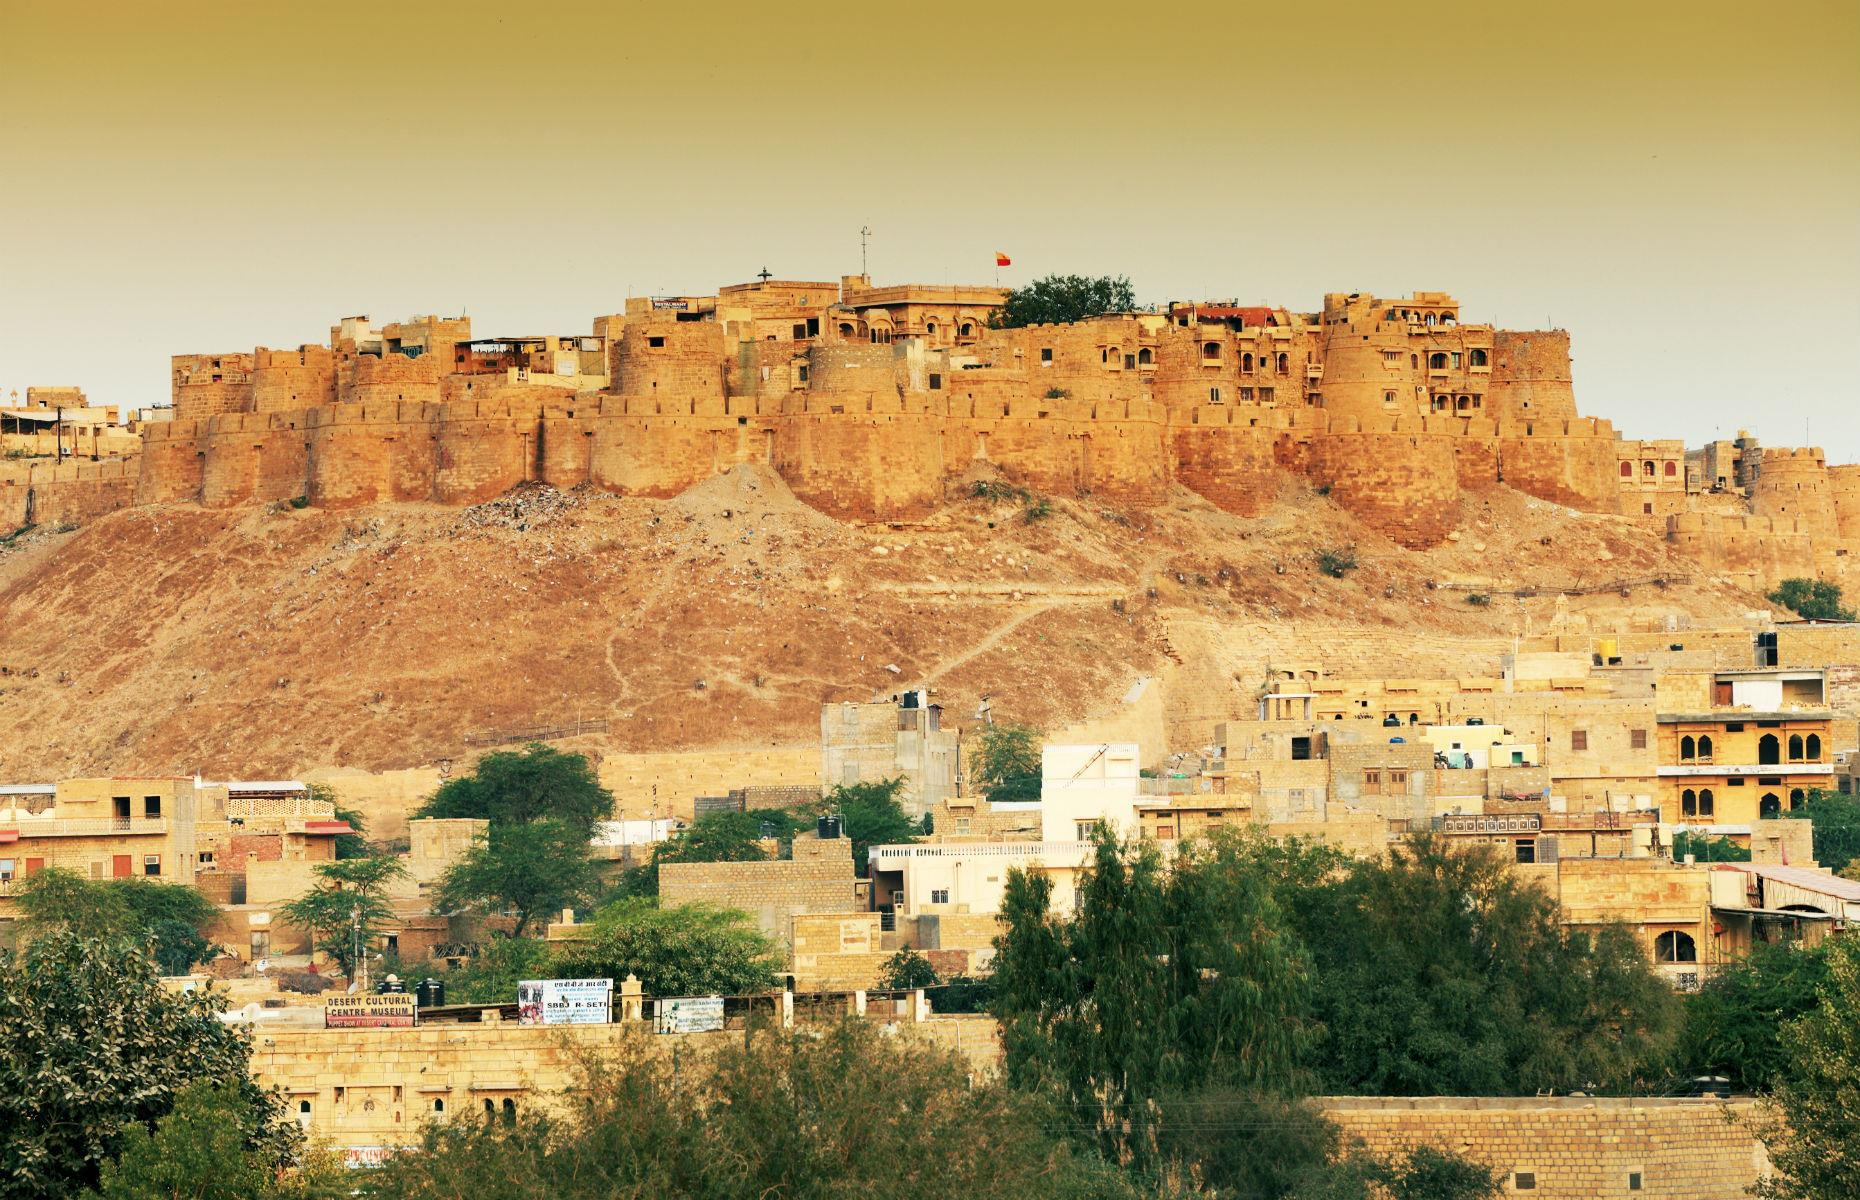 Slide 46 of 61: Jaisalmer fort was constructed in 1156 and, designed to baffle intruders, its yellow sandstone expanse means it's impressively camouflaged. It blends seamlessly with the surrounding Thar desert, especially when the sun sets.